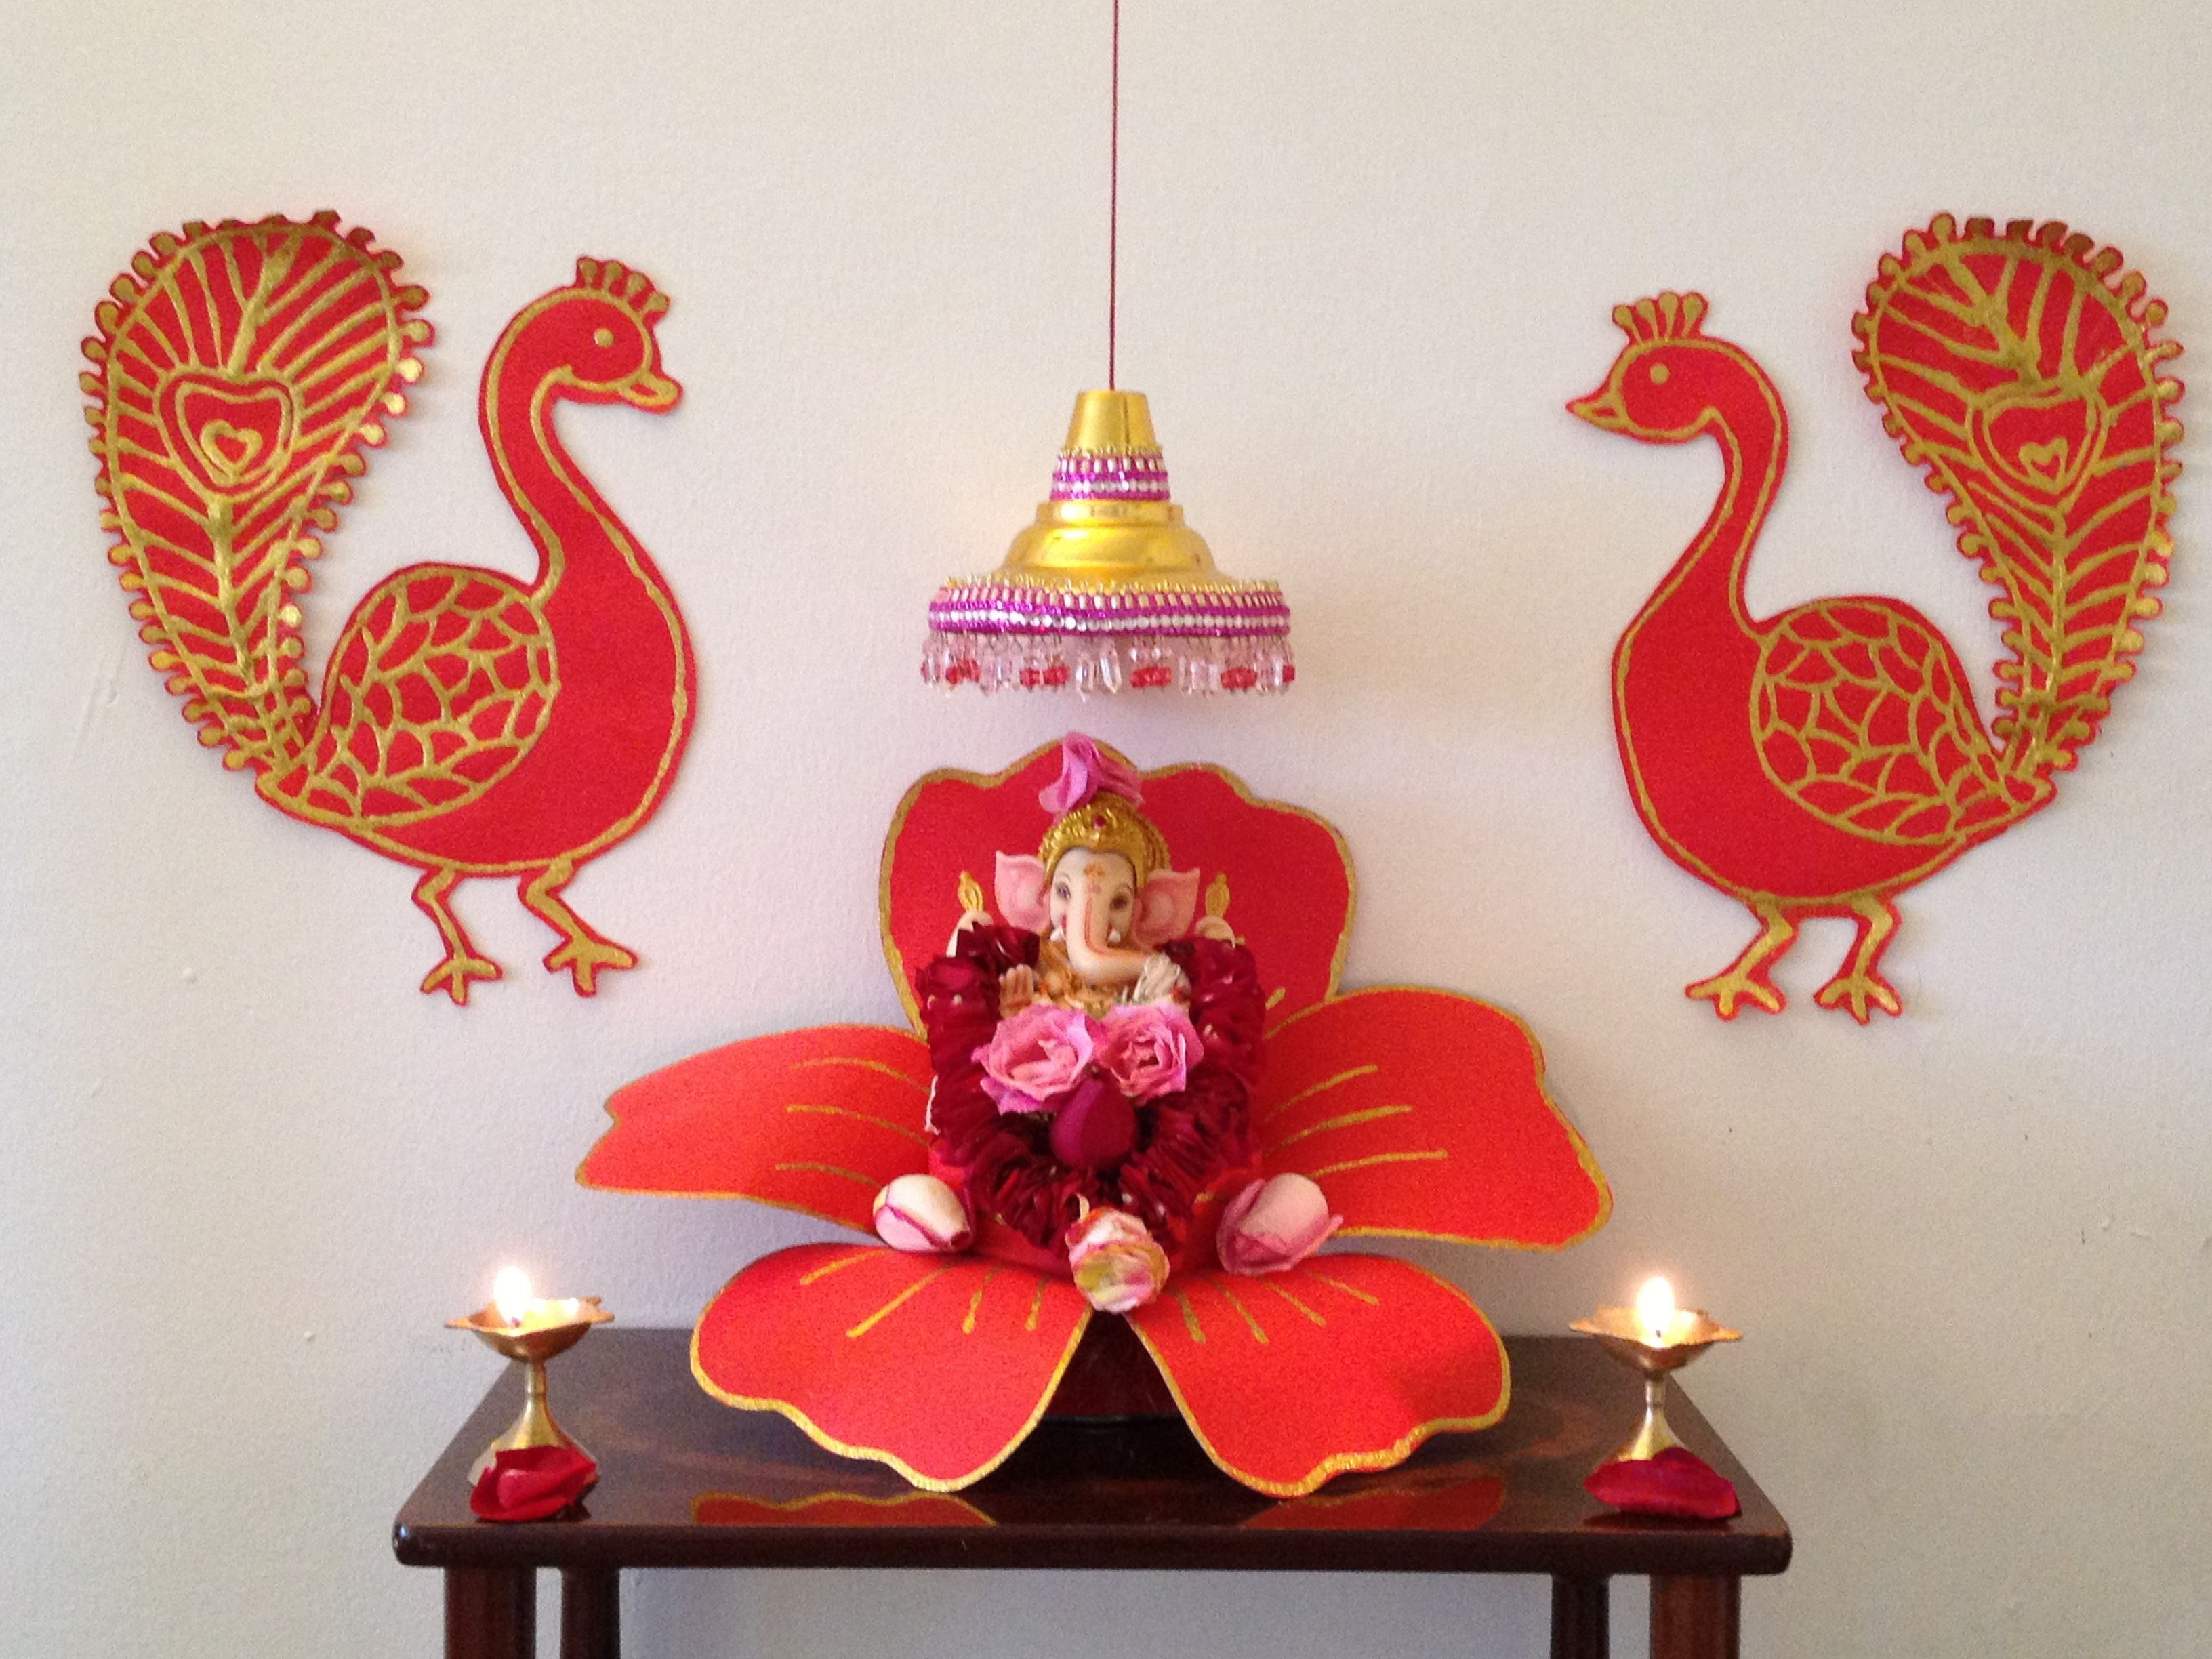 Diwali Decoration Ideas And Crafts Ganpati 2012 Festivals Pinterest Decoration Ganesh